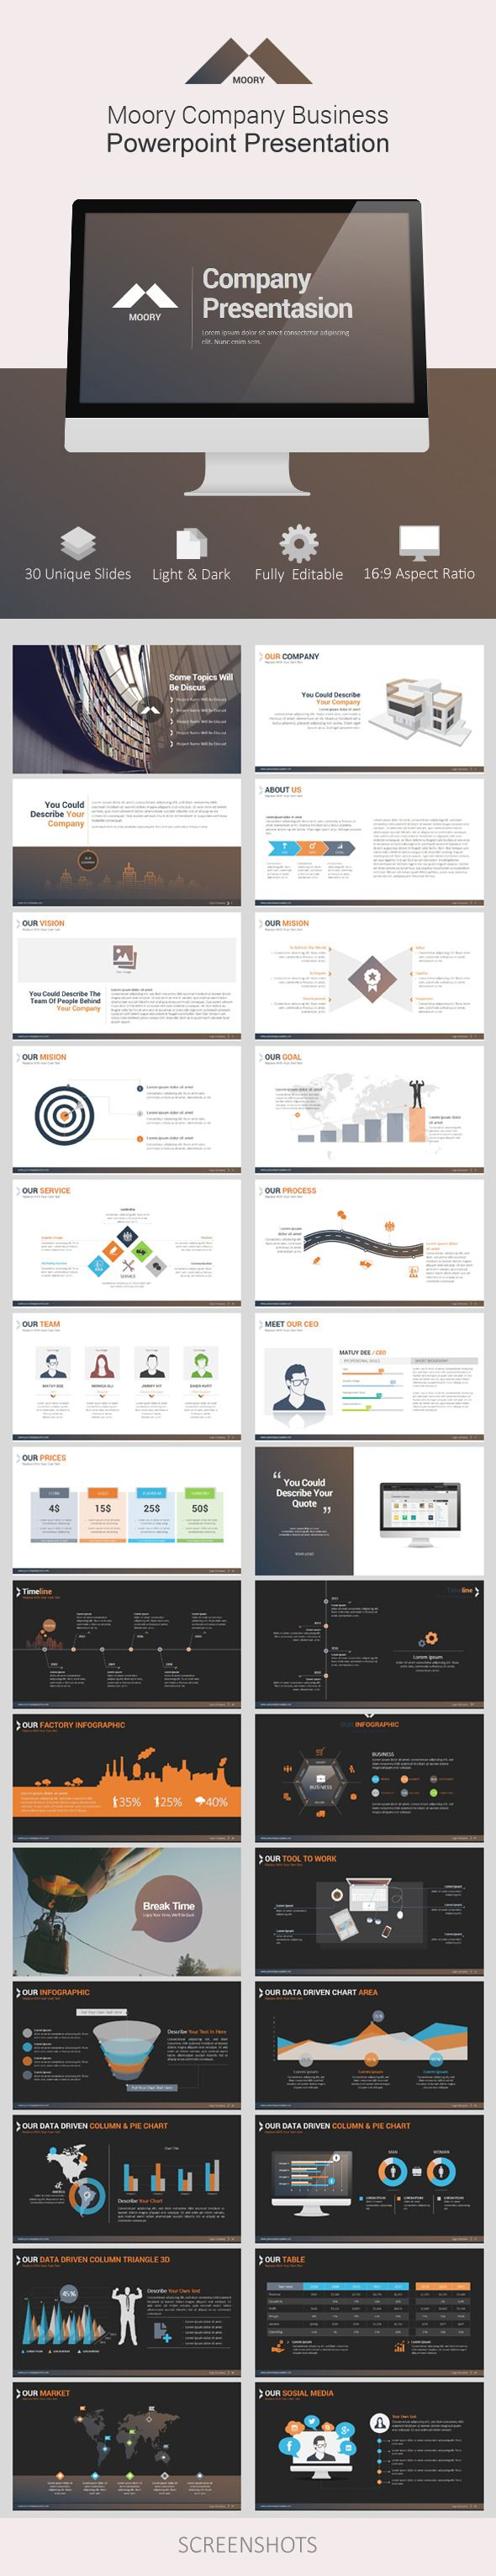 Moory Company Powerpoint Presentation (Powerpoint Templates) Image 20Preview